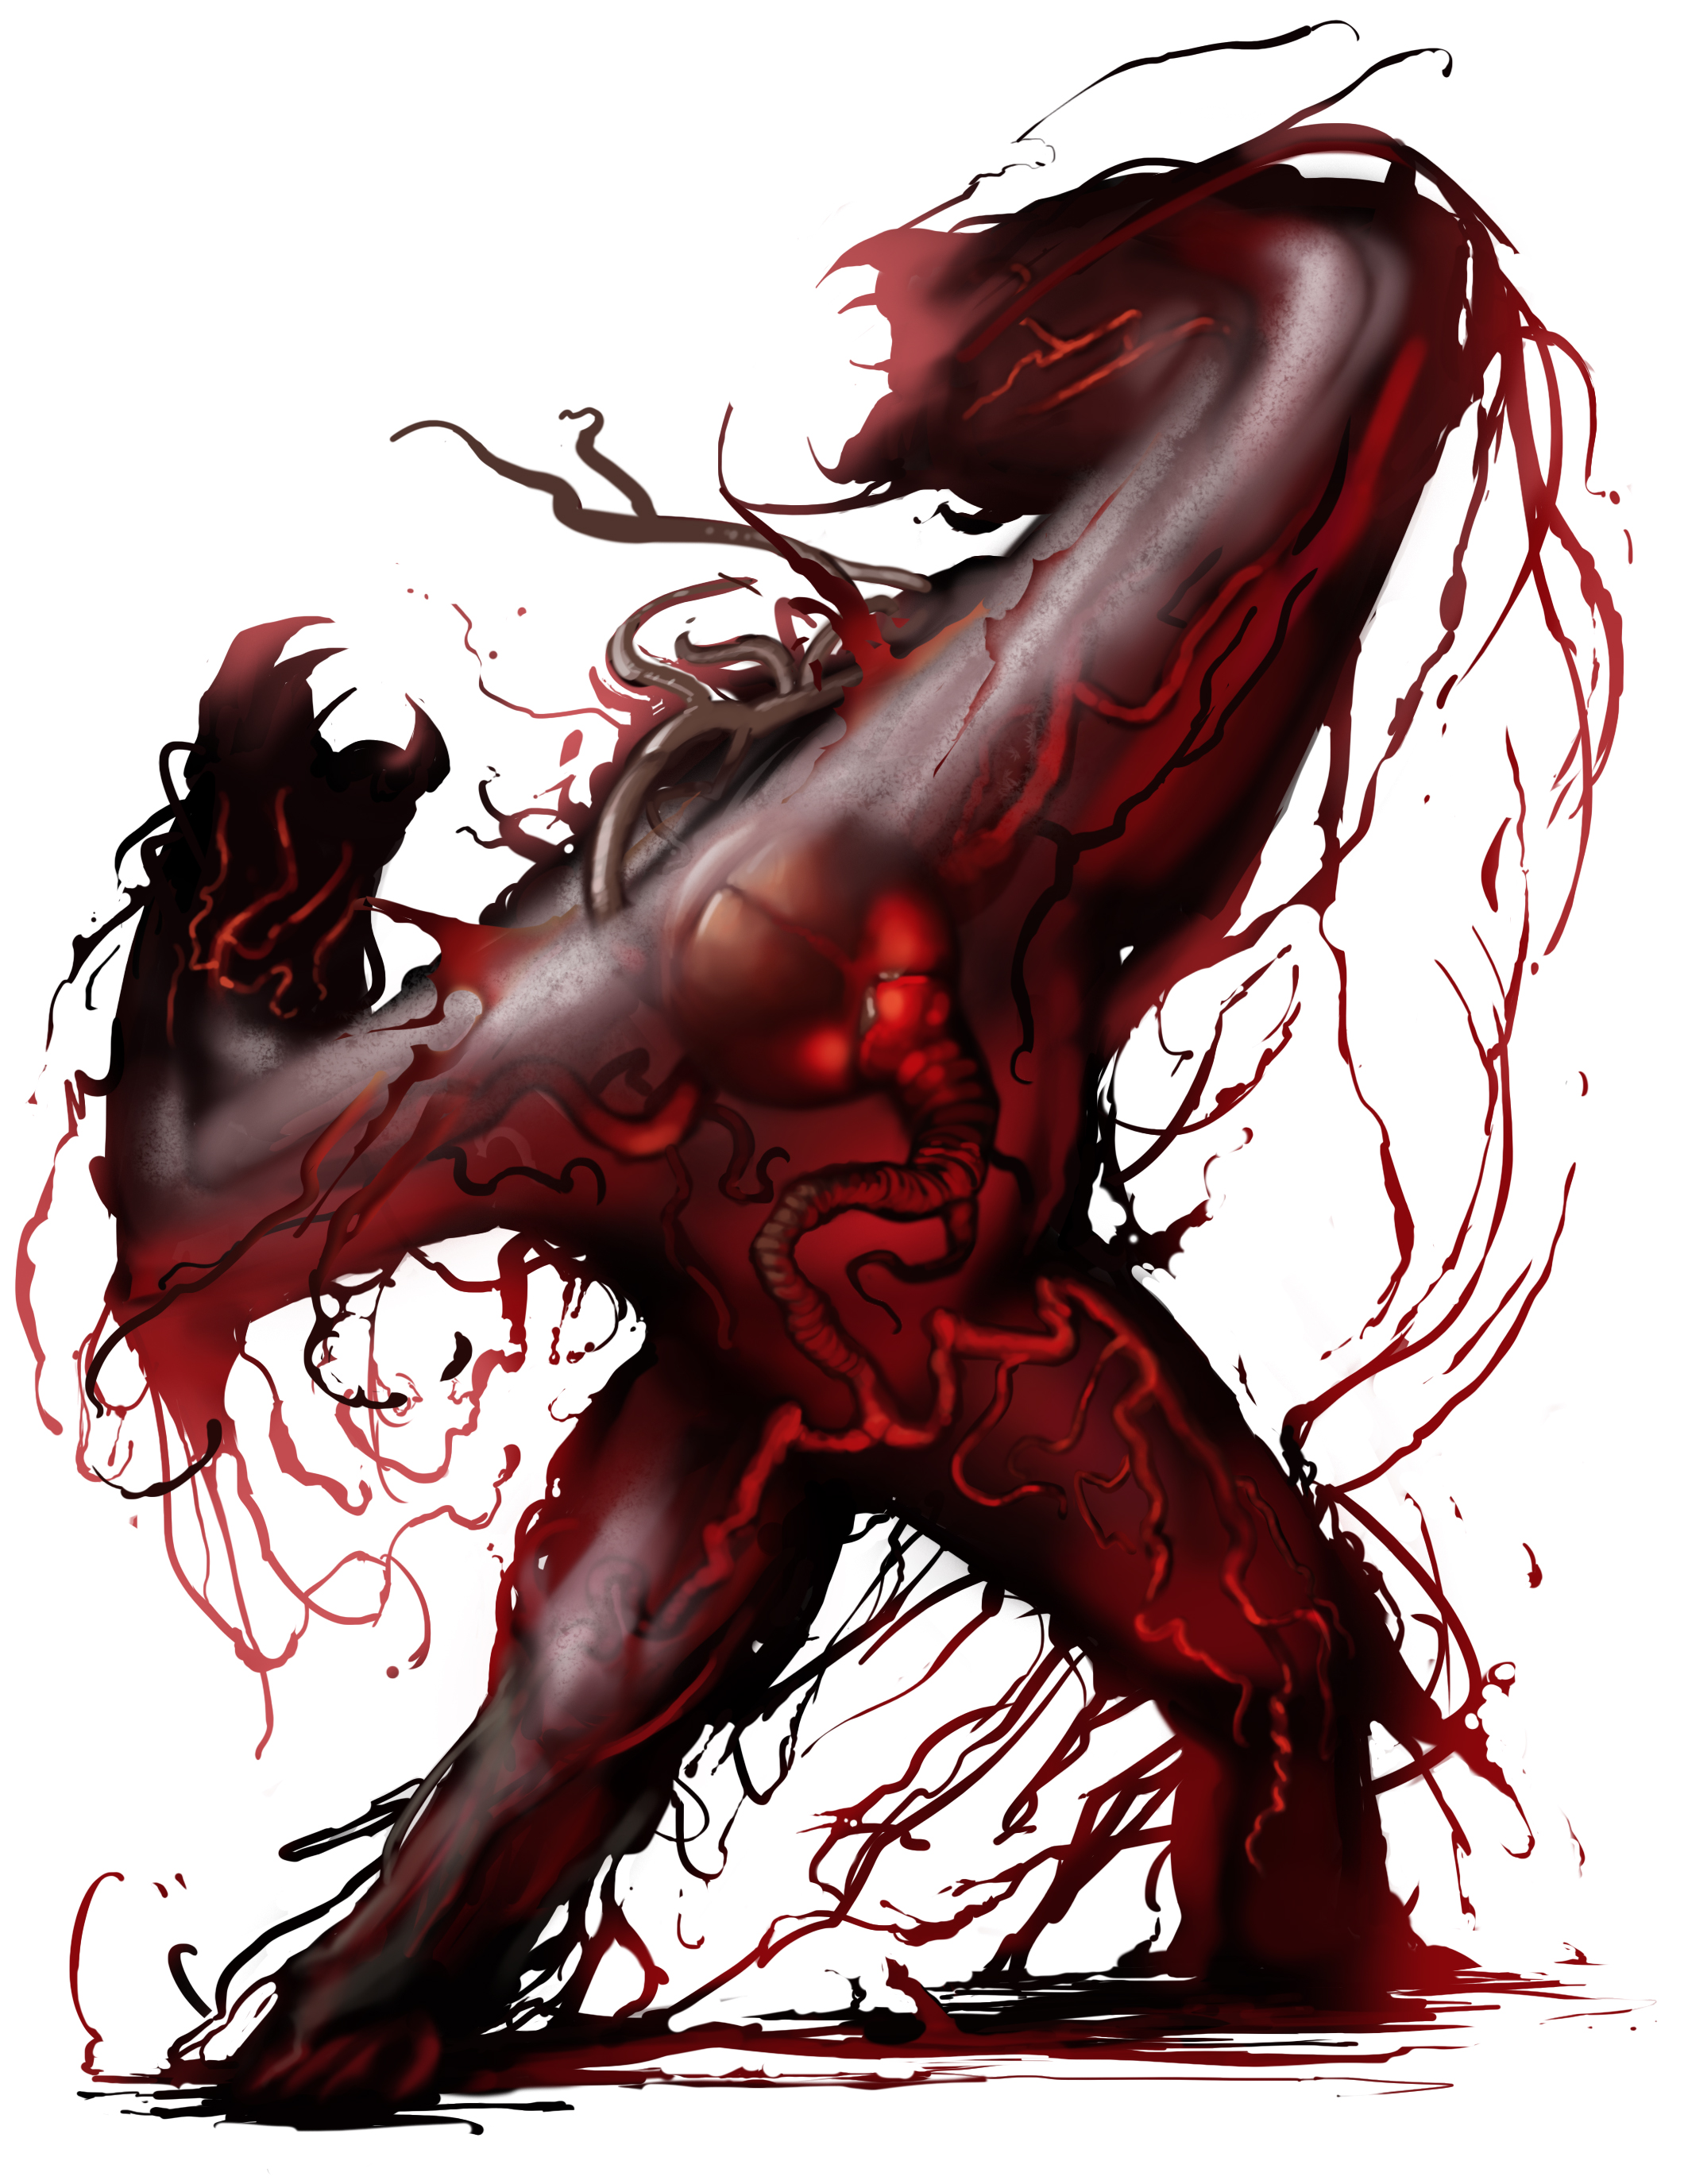 Blood Golem_19_1125015